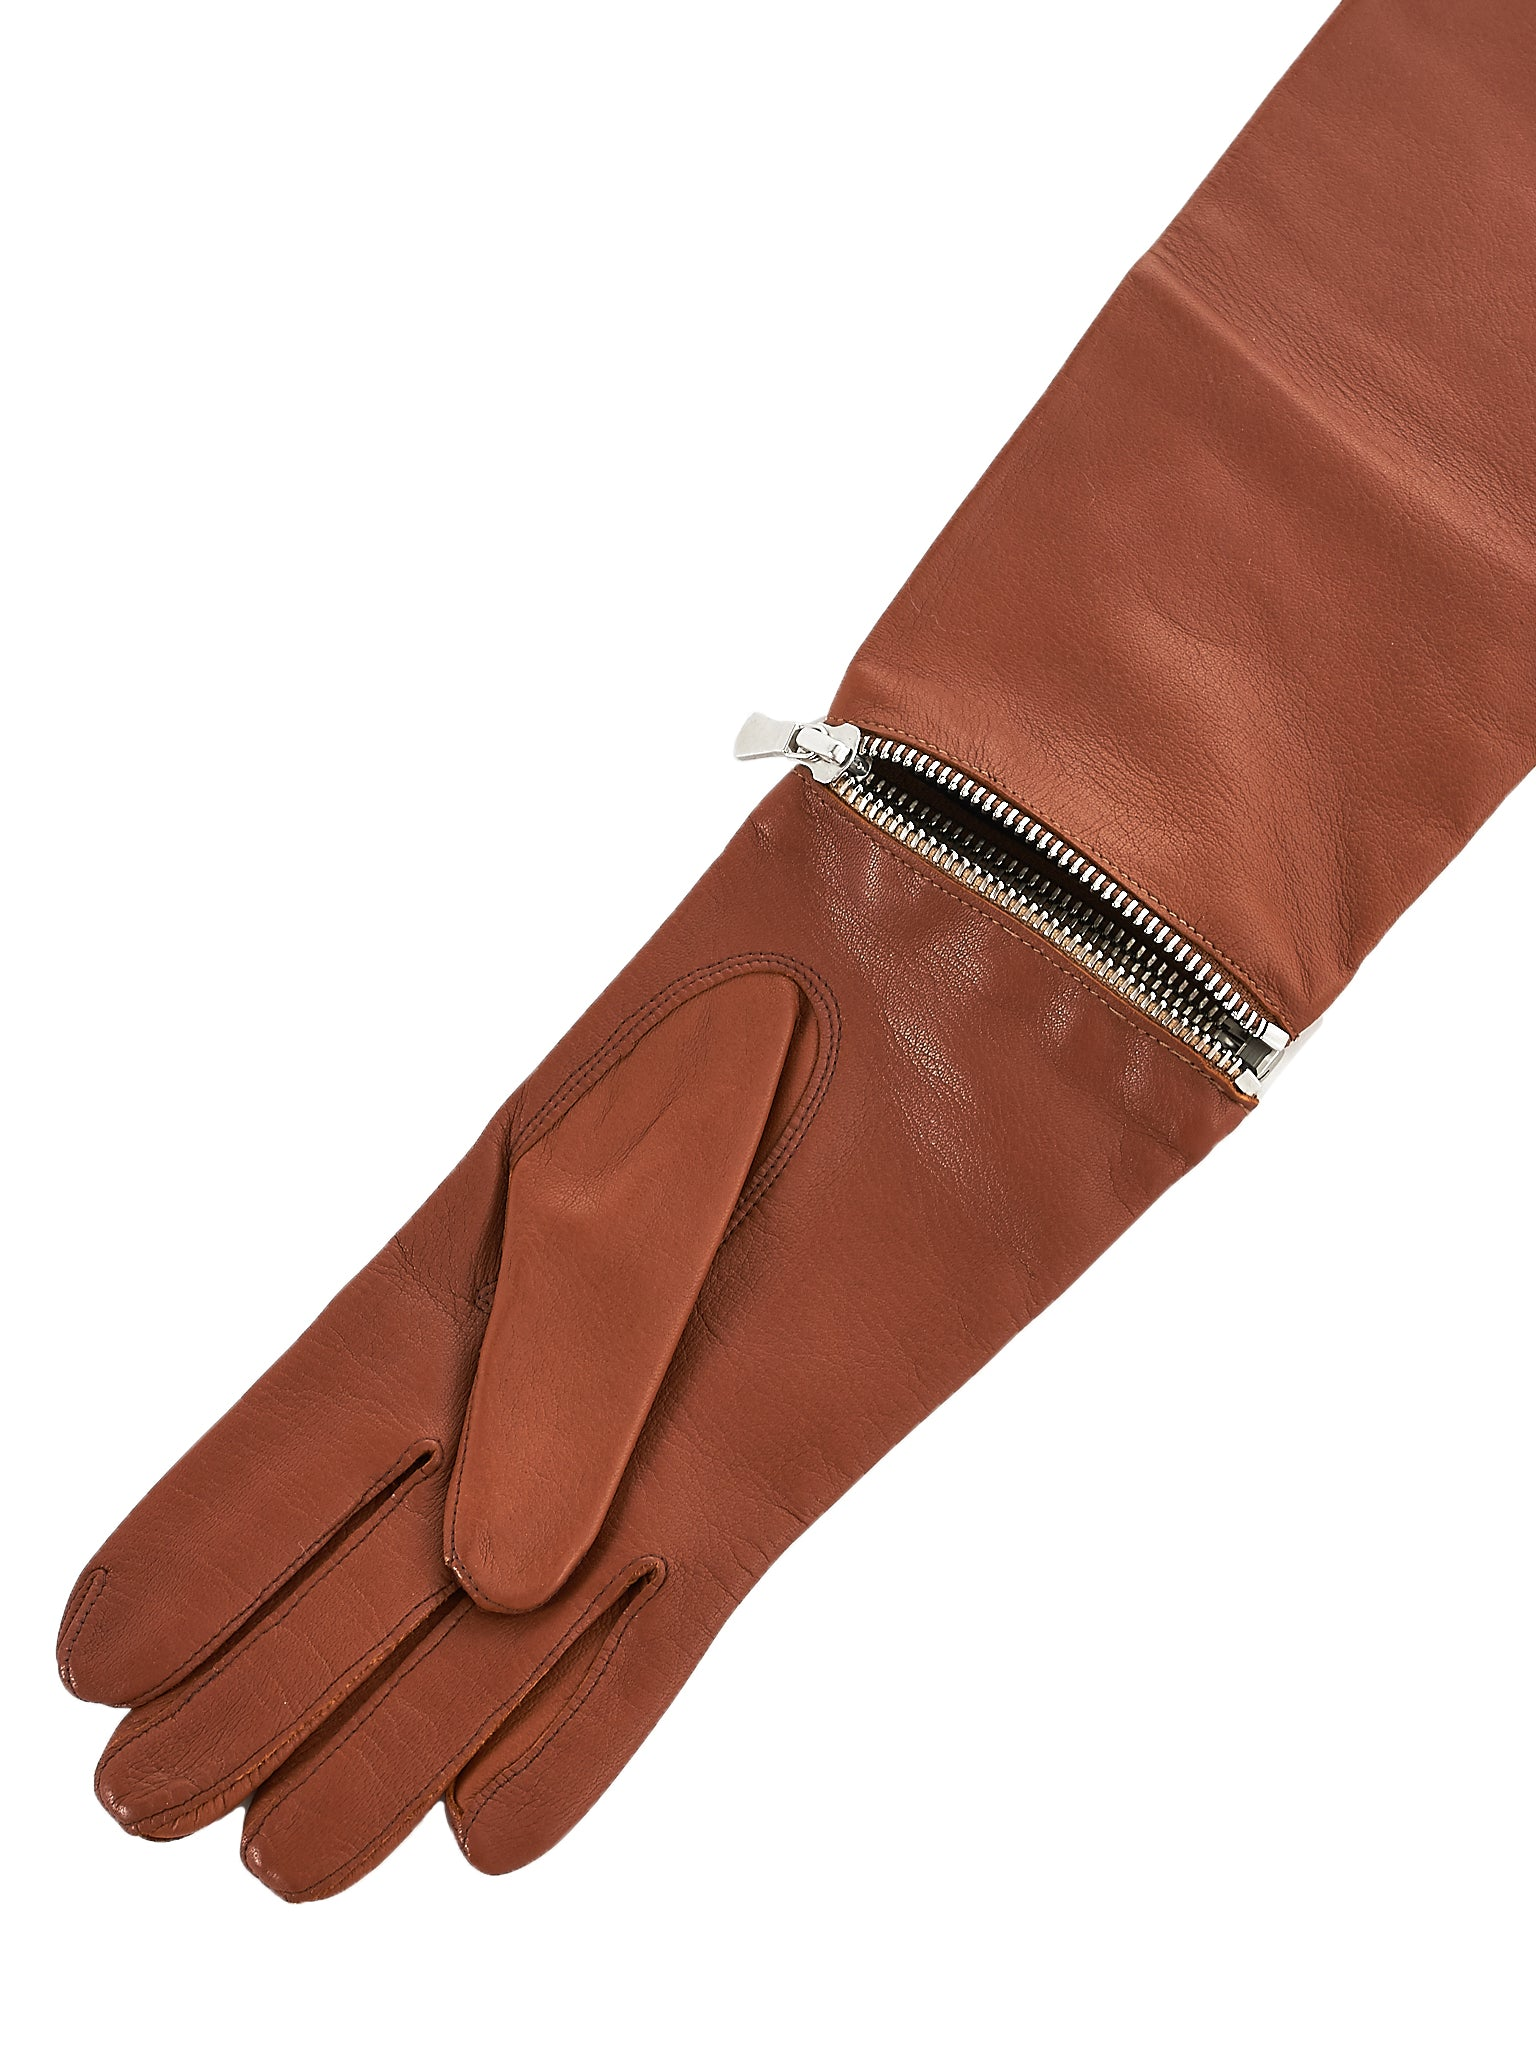 Deconstructed Zip Evening Gloves (GL600-GINA-CARAMEL)